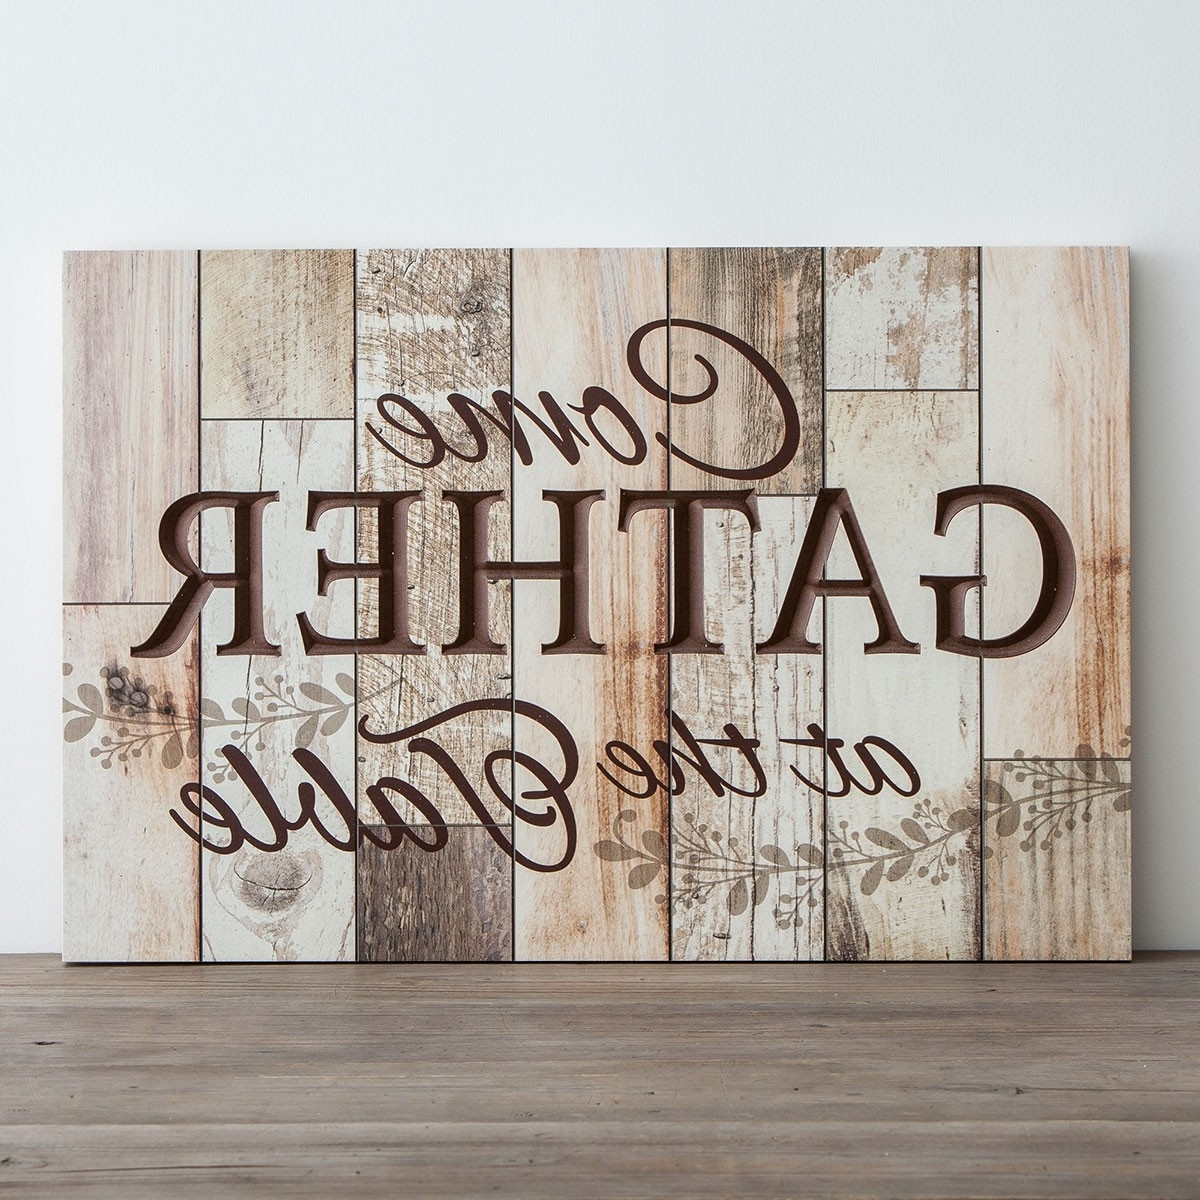 Most Recent Wooden Wall Art Intended For Come Gather At The Table – Wooden Wall Art (View 4 of 15)